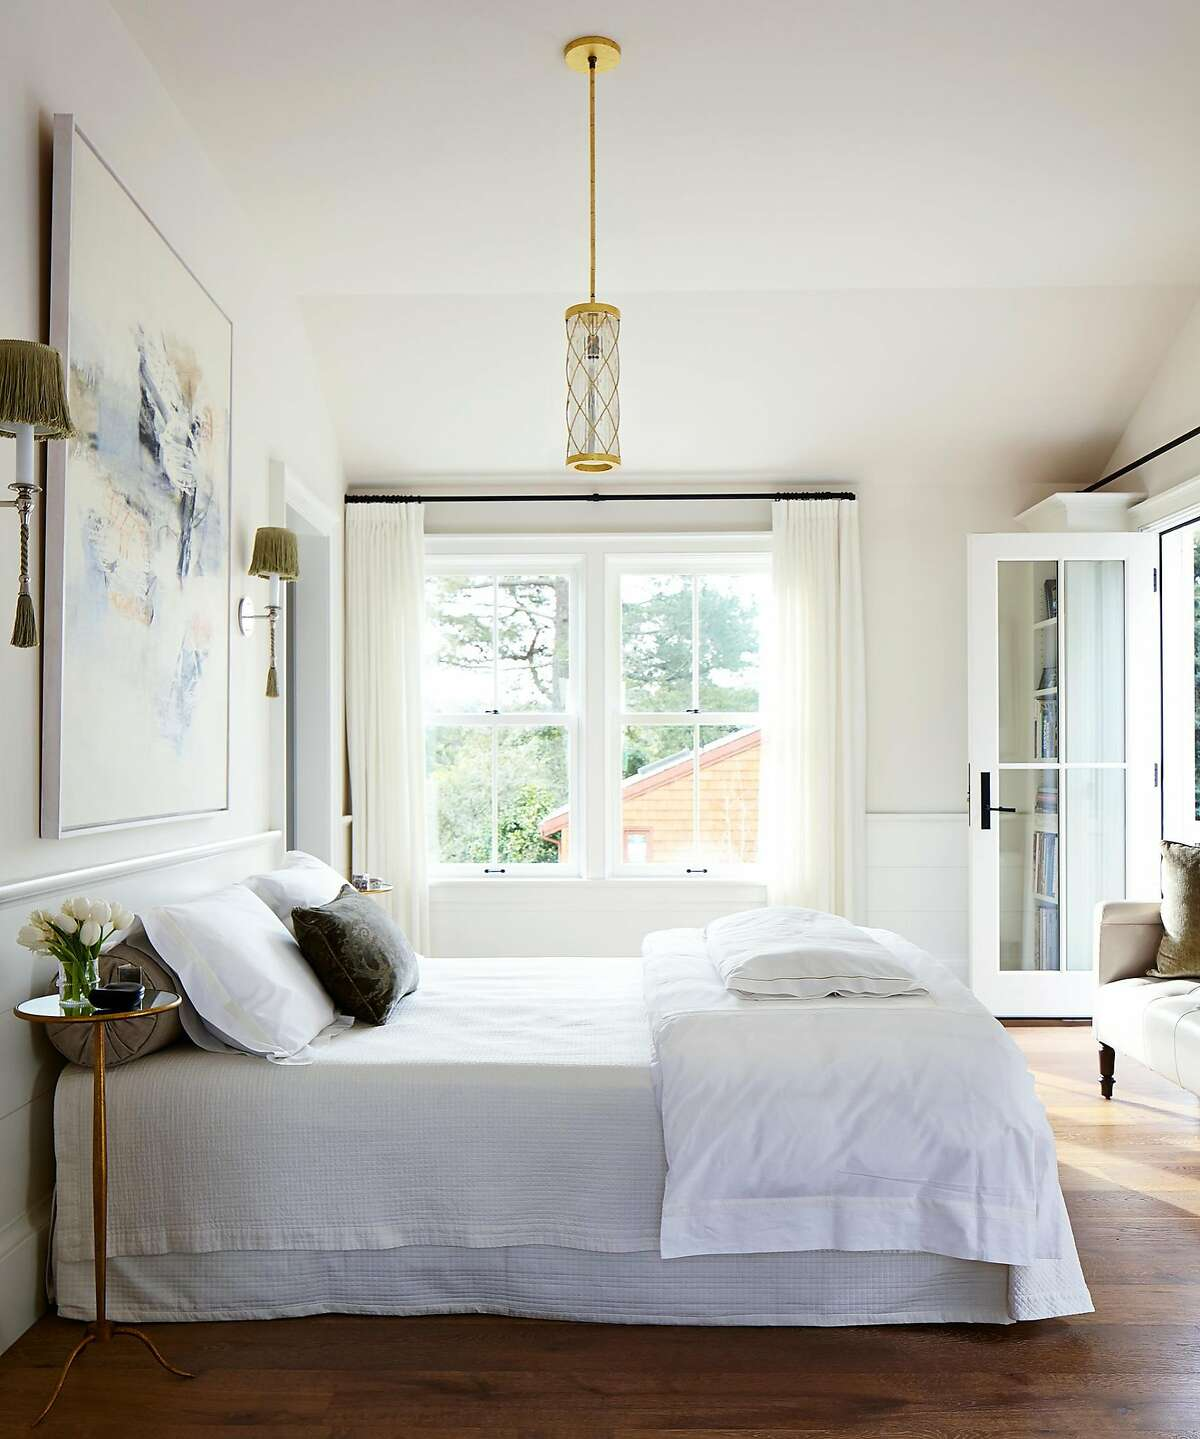 Wainscoting and hardwood flooring provide complementary classical finishes to this bedroom in Mill Valley.�